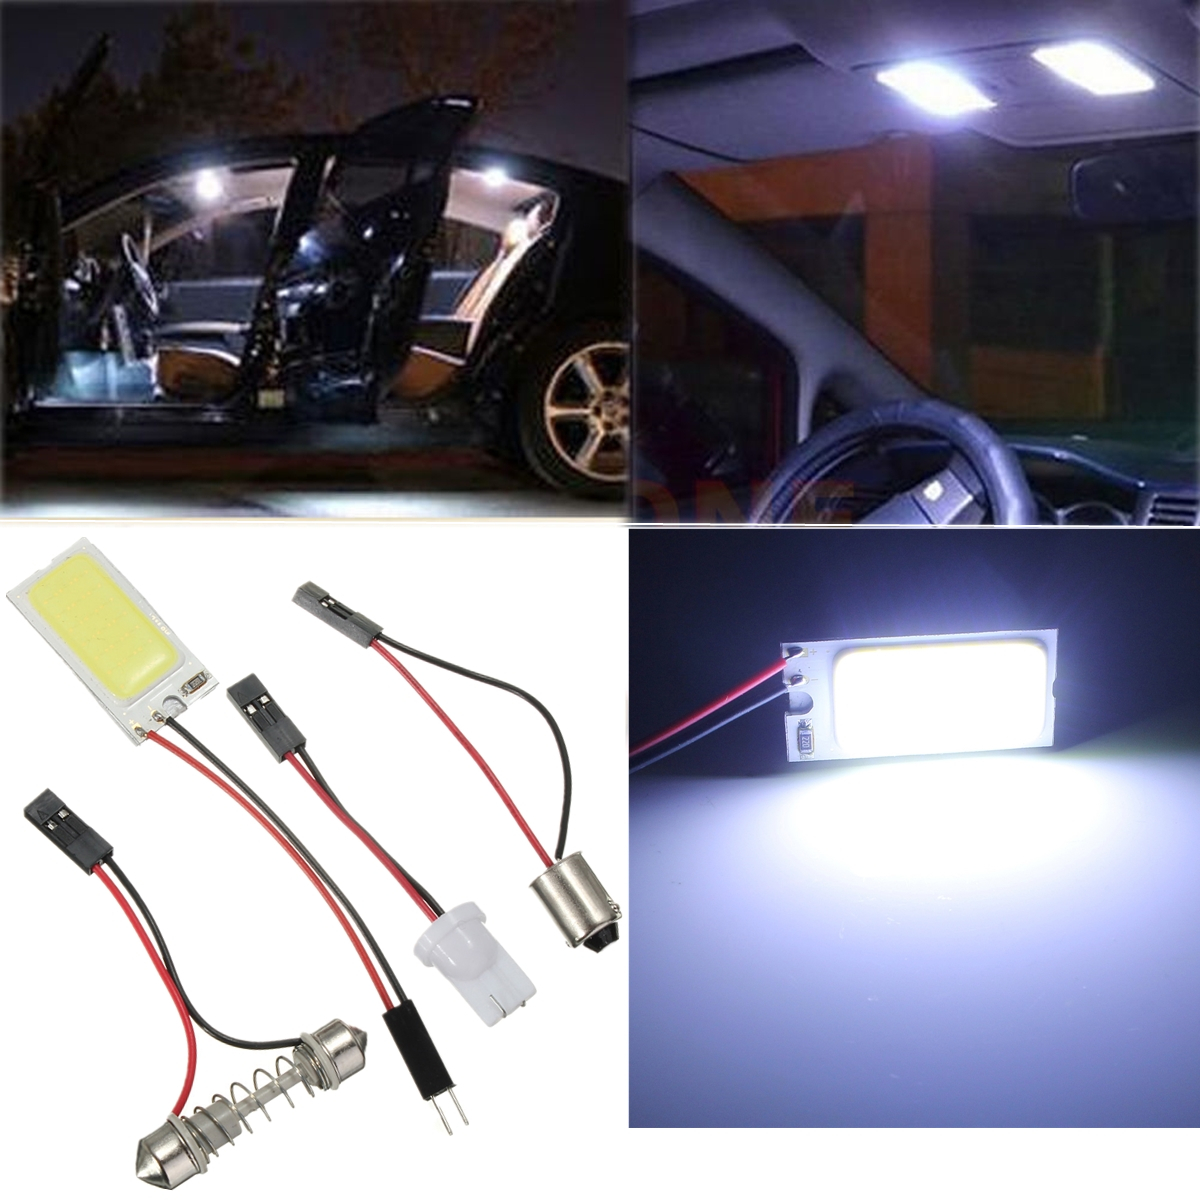 t10 ba9s led cob 21 chip panneau panel feux festoon d me ampoule voiture blanc ebay. Black Bedroom Furniture Sets. Home Design Ideas